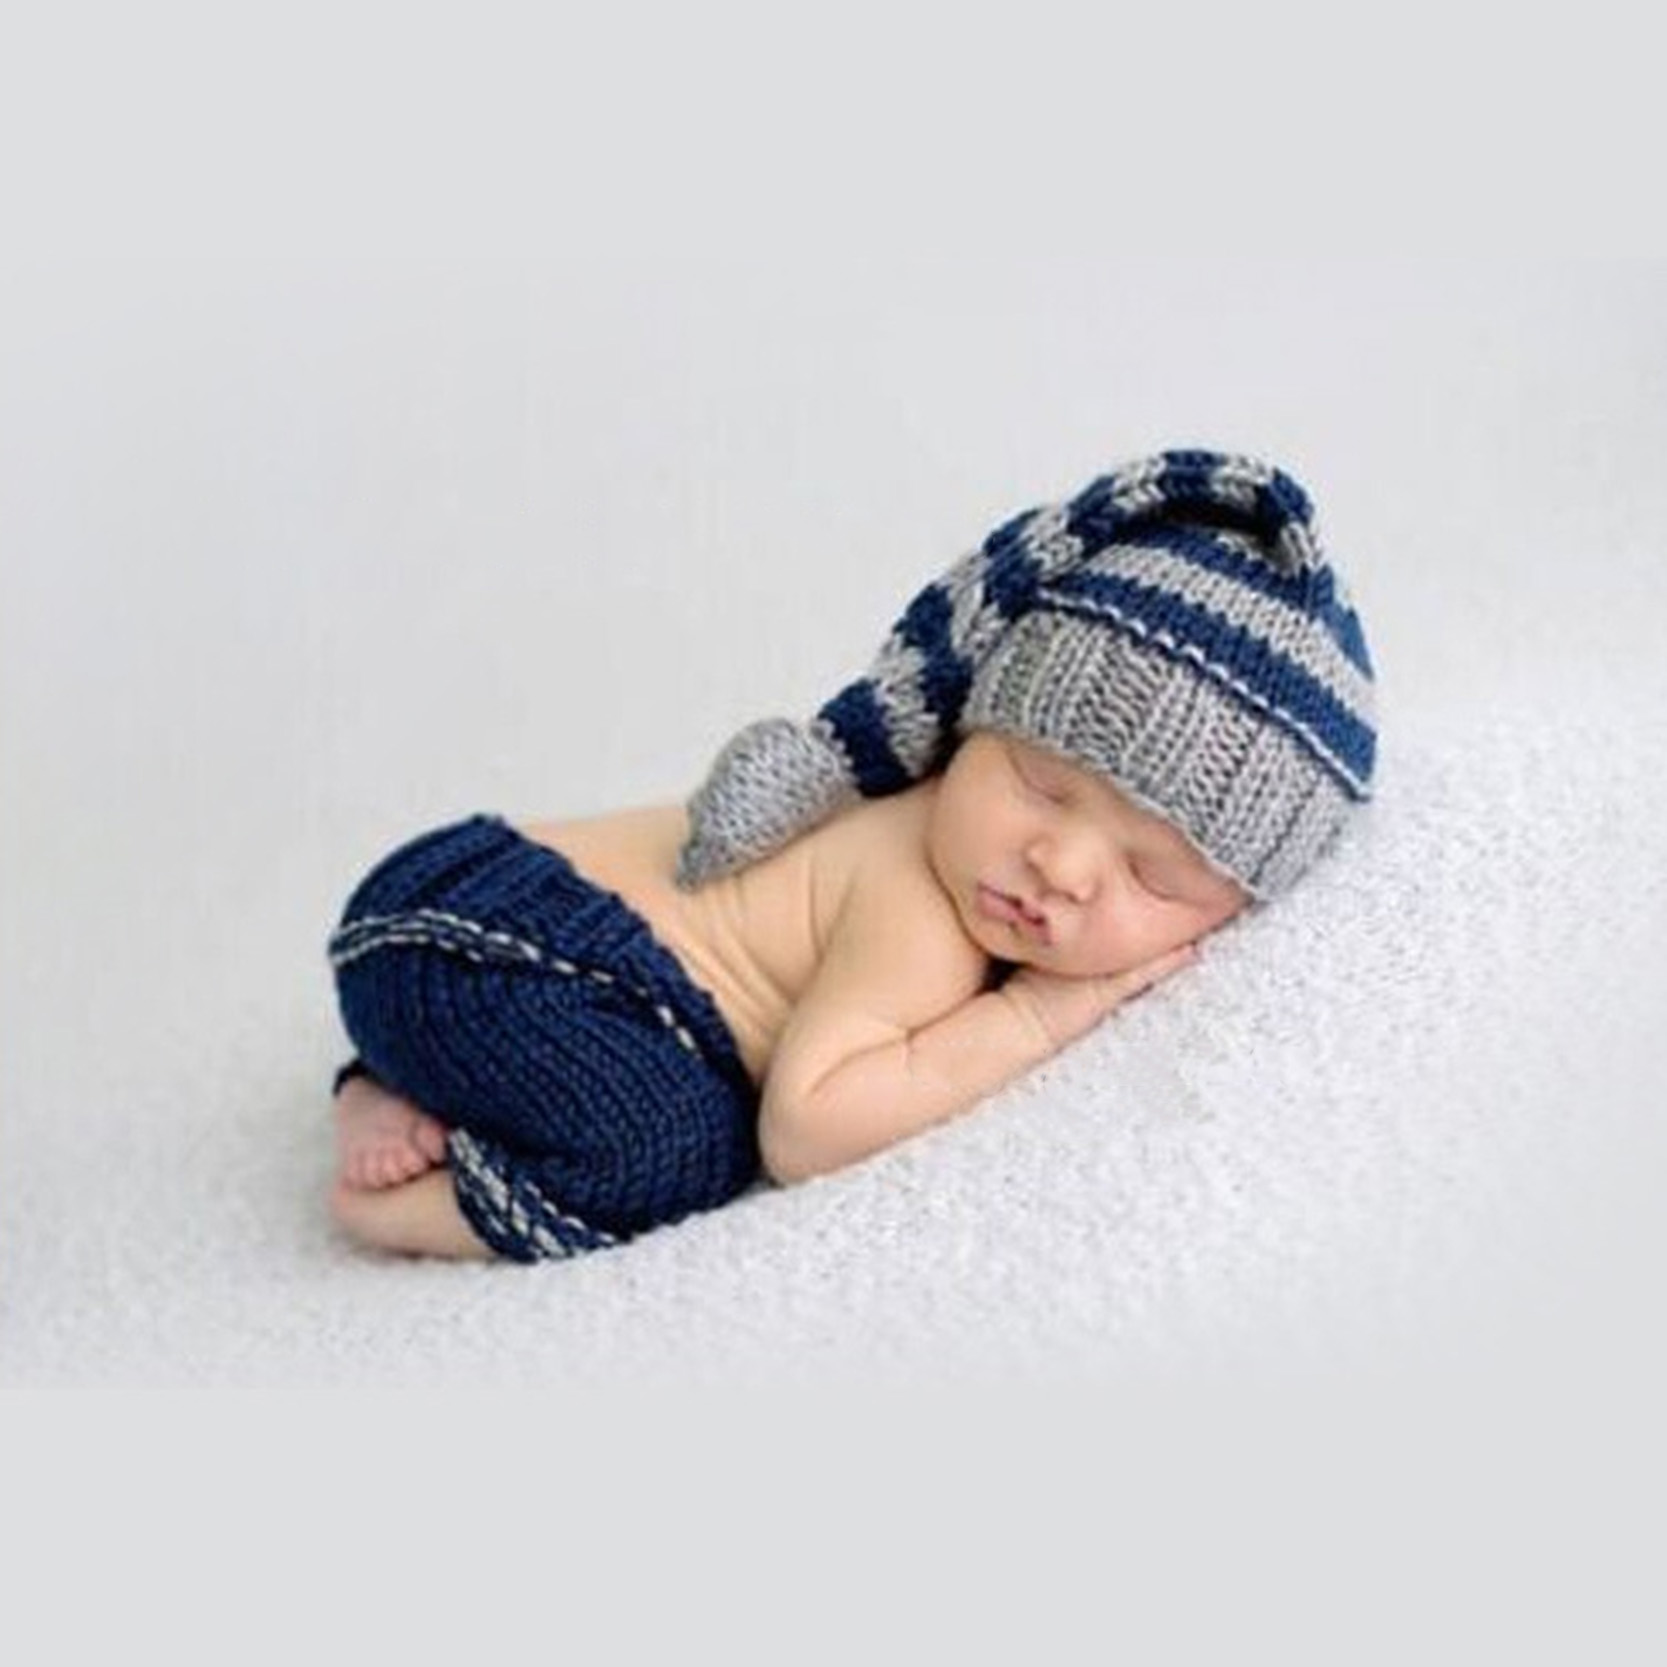 b671de9b157 Newborn Baby Photography Props Soft Baby Clothes Knit Cute Blue Hat ...